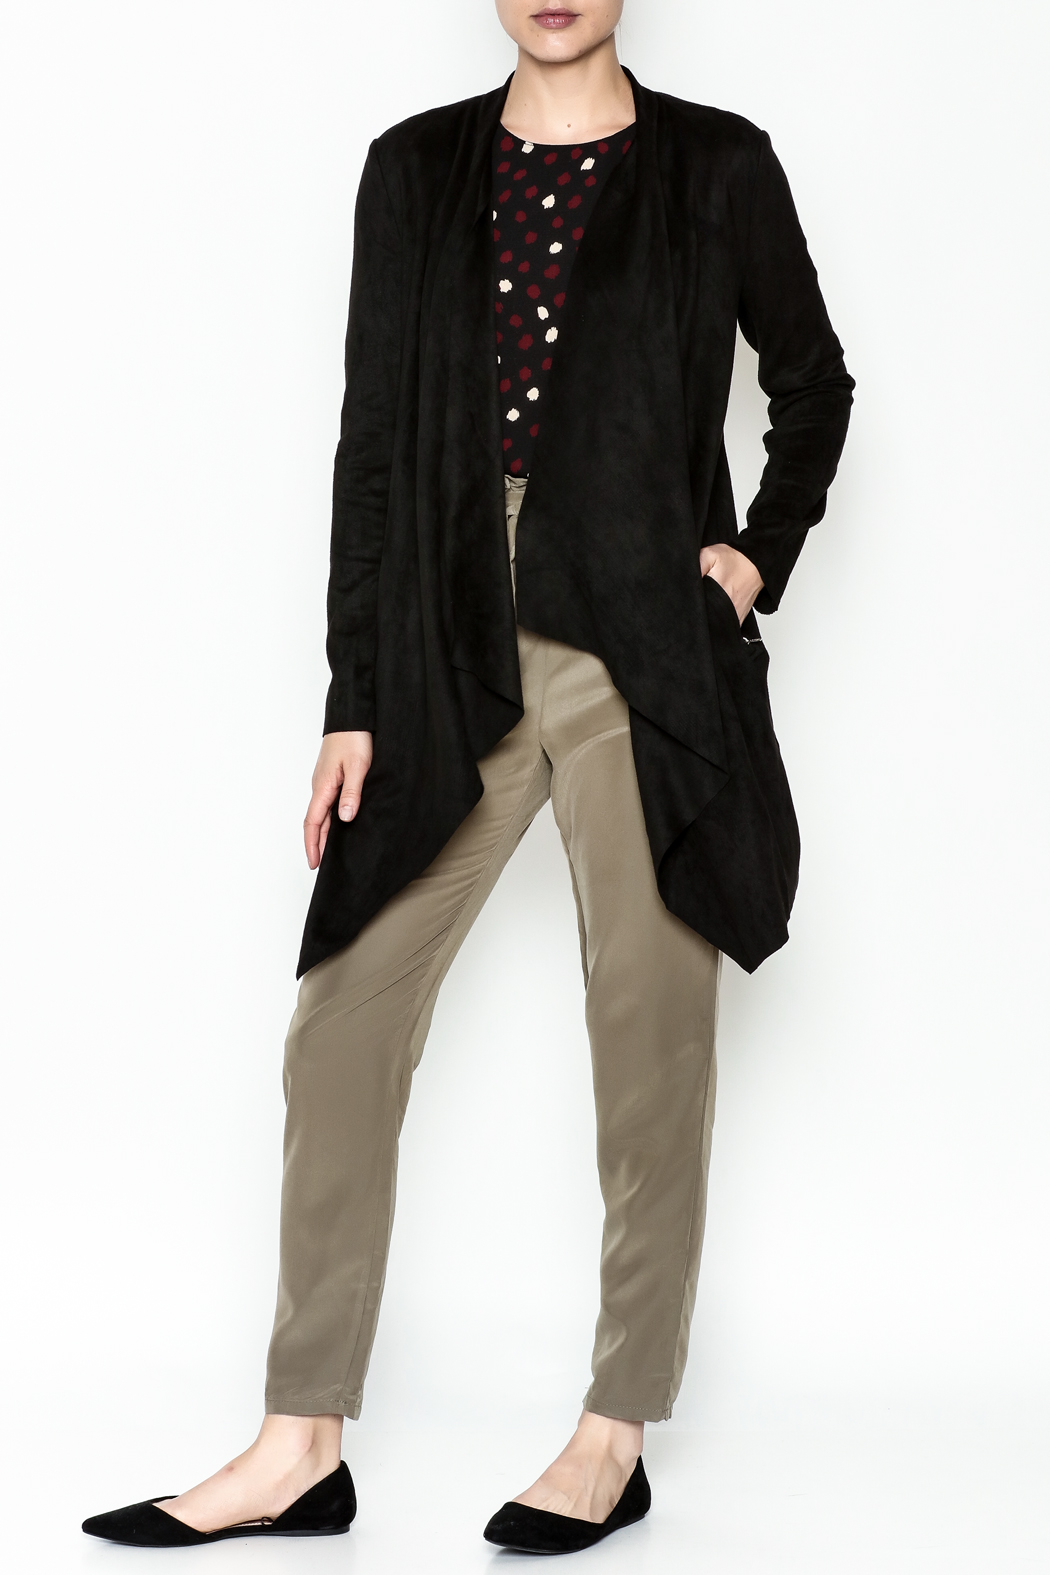 WREN & WILLA Faux Suede Cardigan - Side Cropped Image